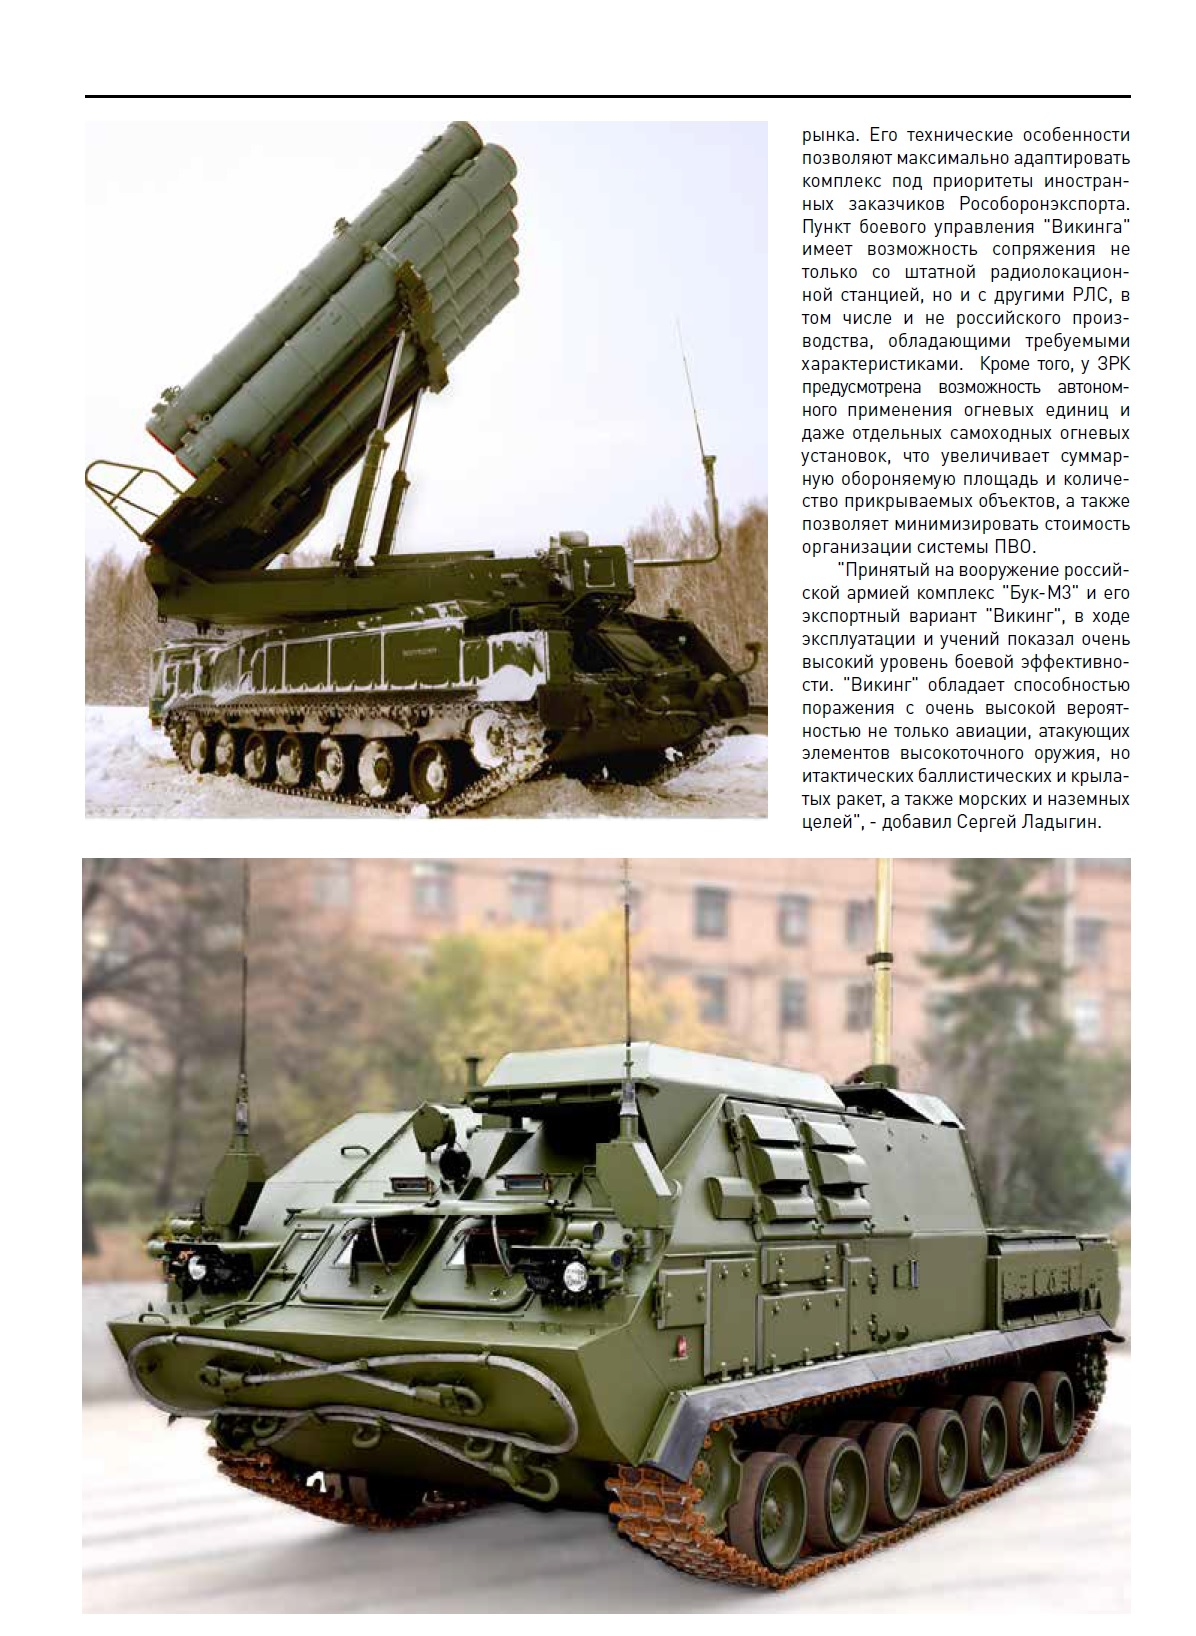 http://militaryrussia.ru/forum/download/file.php?id=41504&sid=283c0289acc434d92d67ee9a2cd236e6&mode=view